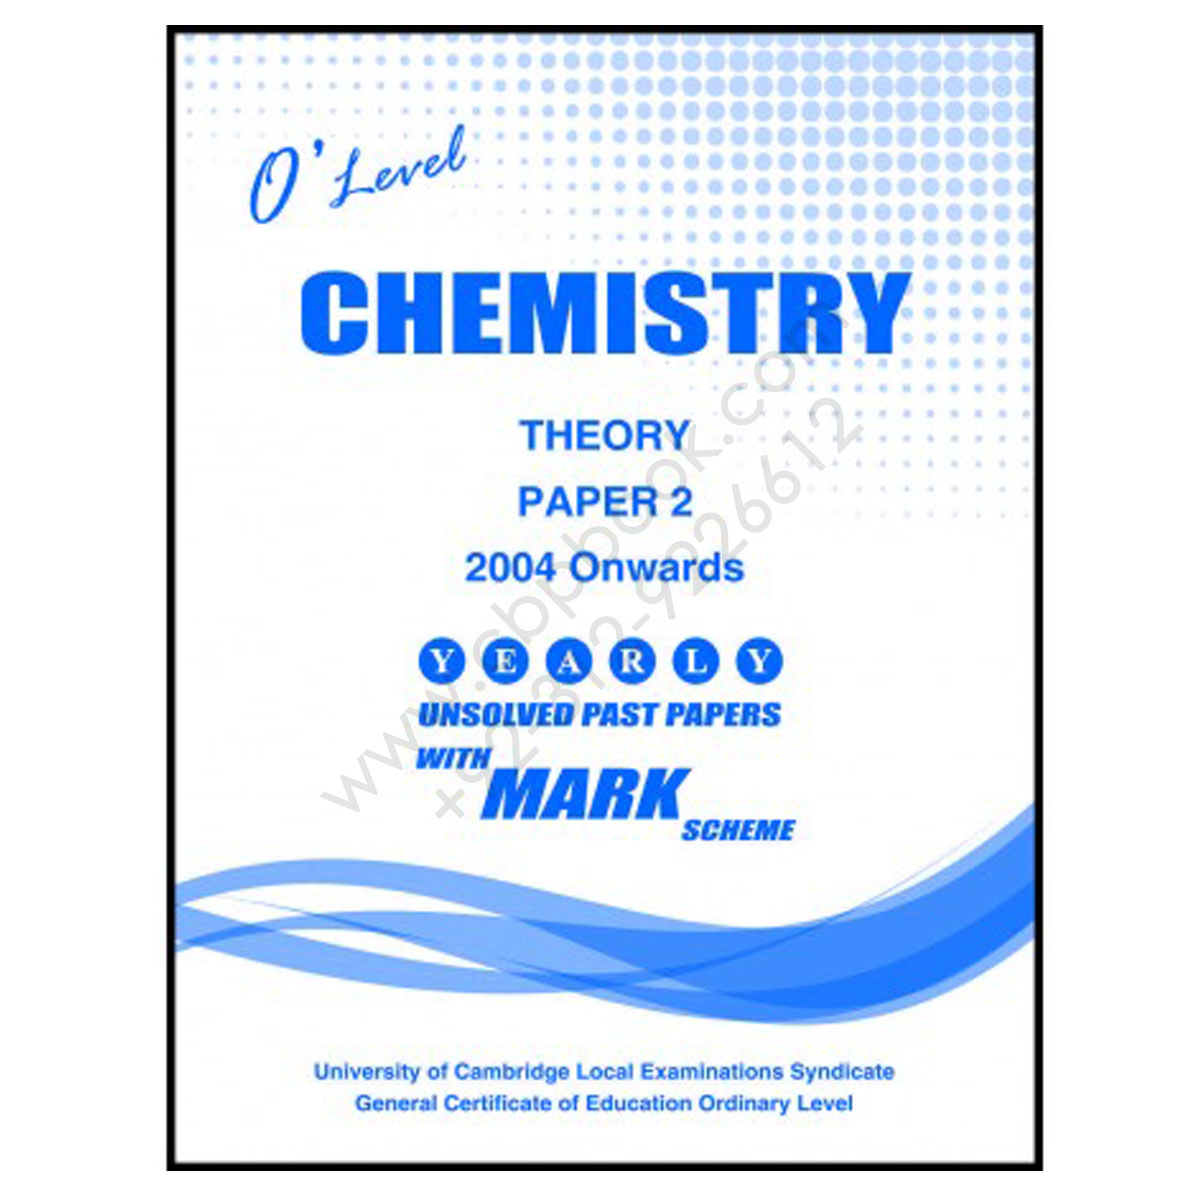 O Level CHEMISTRY Paper 2 Yearly Unsolved with Mark Scheme 2008 - Nov 2018